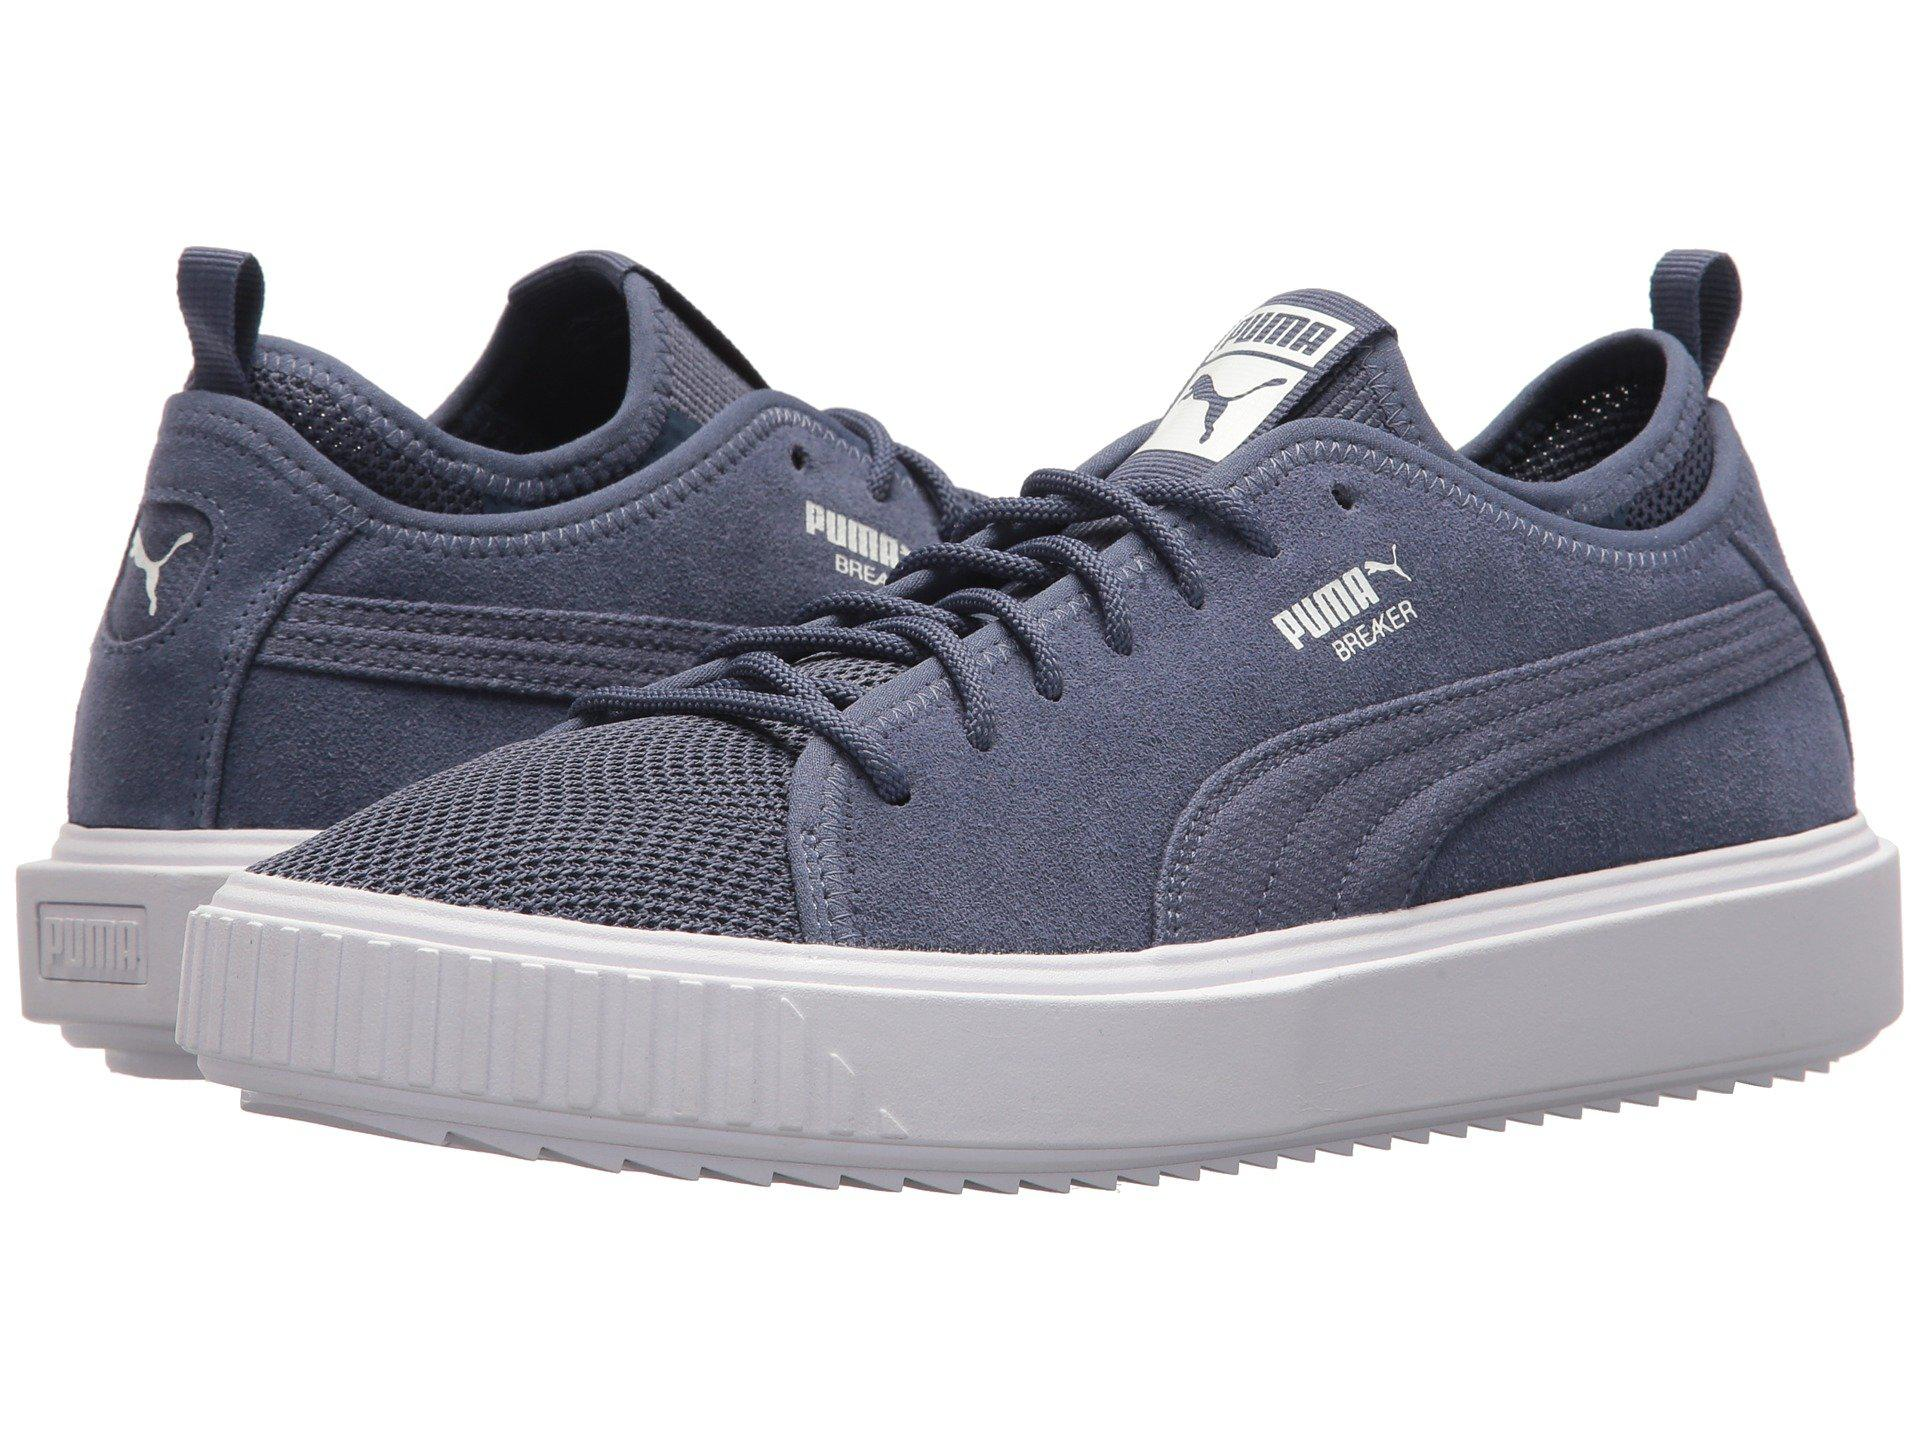 25be15050be0 Lyst - PUMA Breaker Mesh in Blue for Men - Save 42%